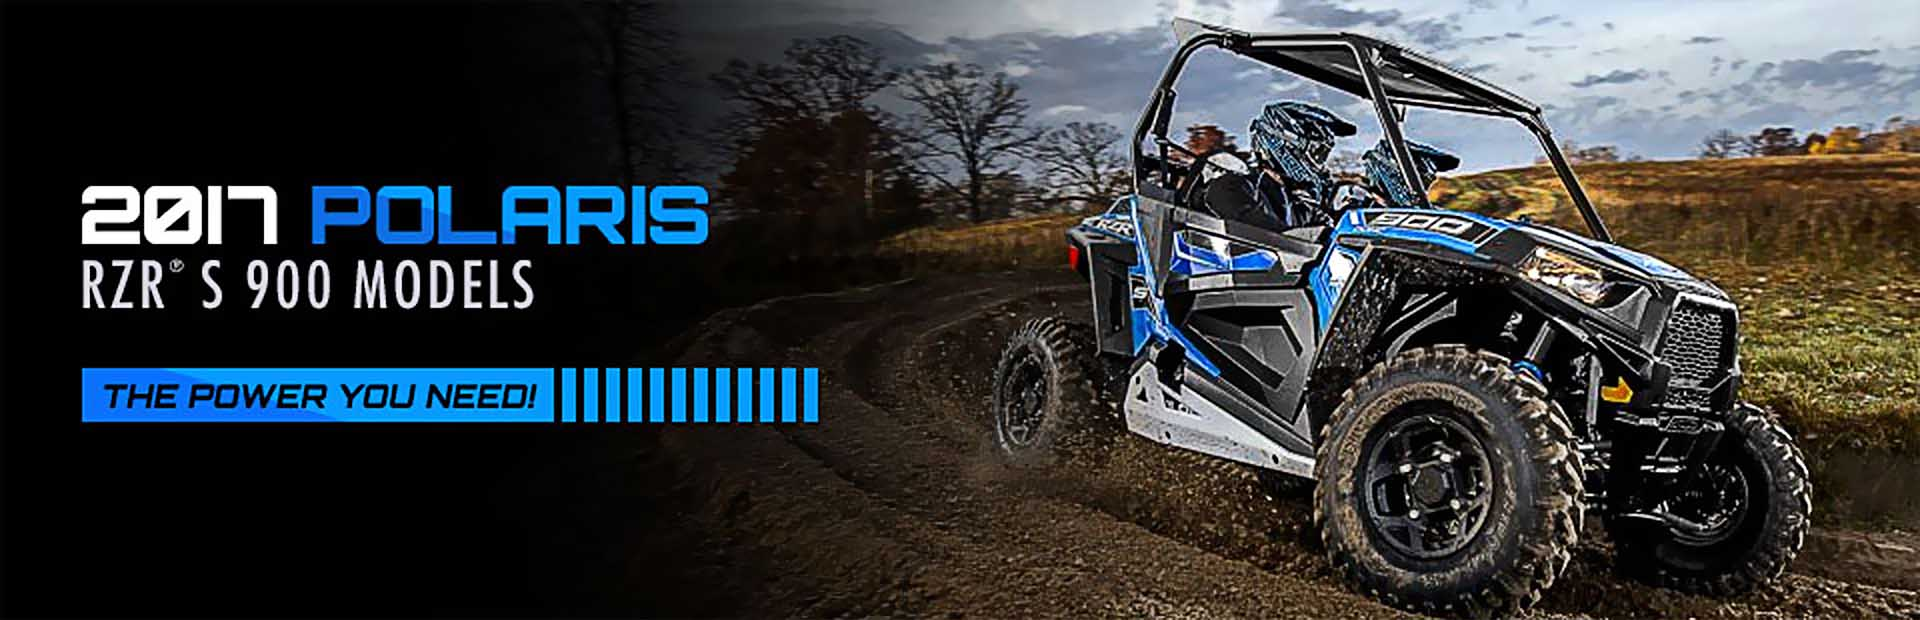 2017 Polaris Industries RZR® S 900 Models: Click here to view the selection.